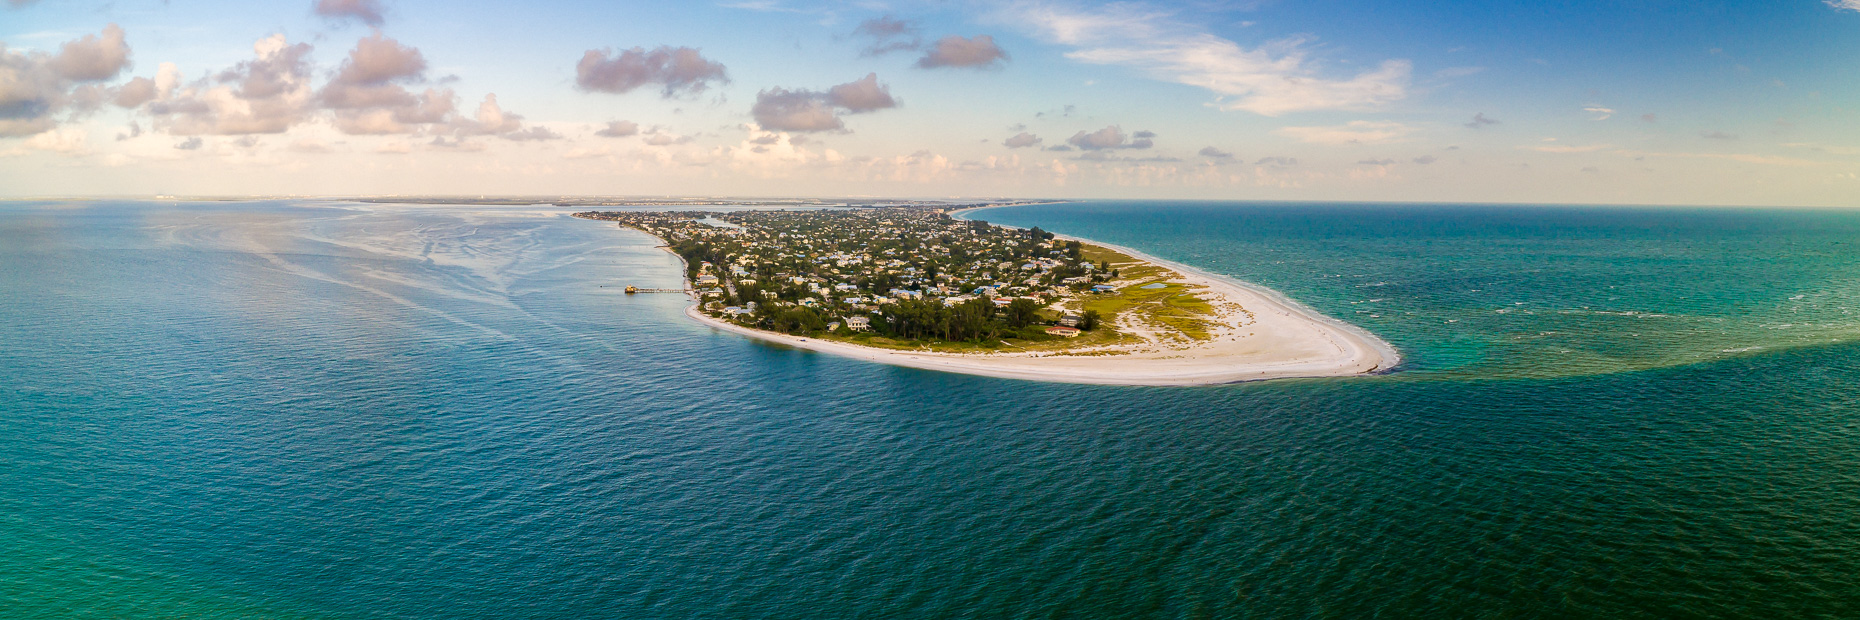 Aerial drone view of Anna Maria Island at sunset